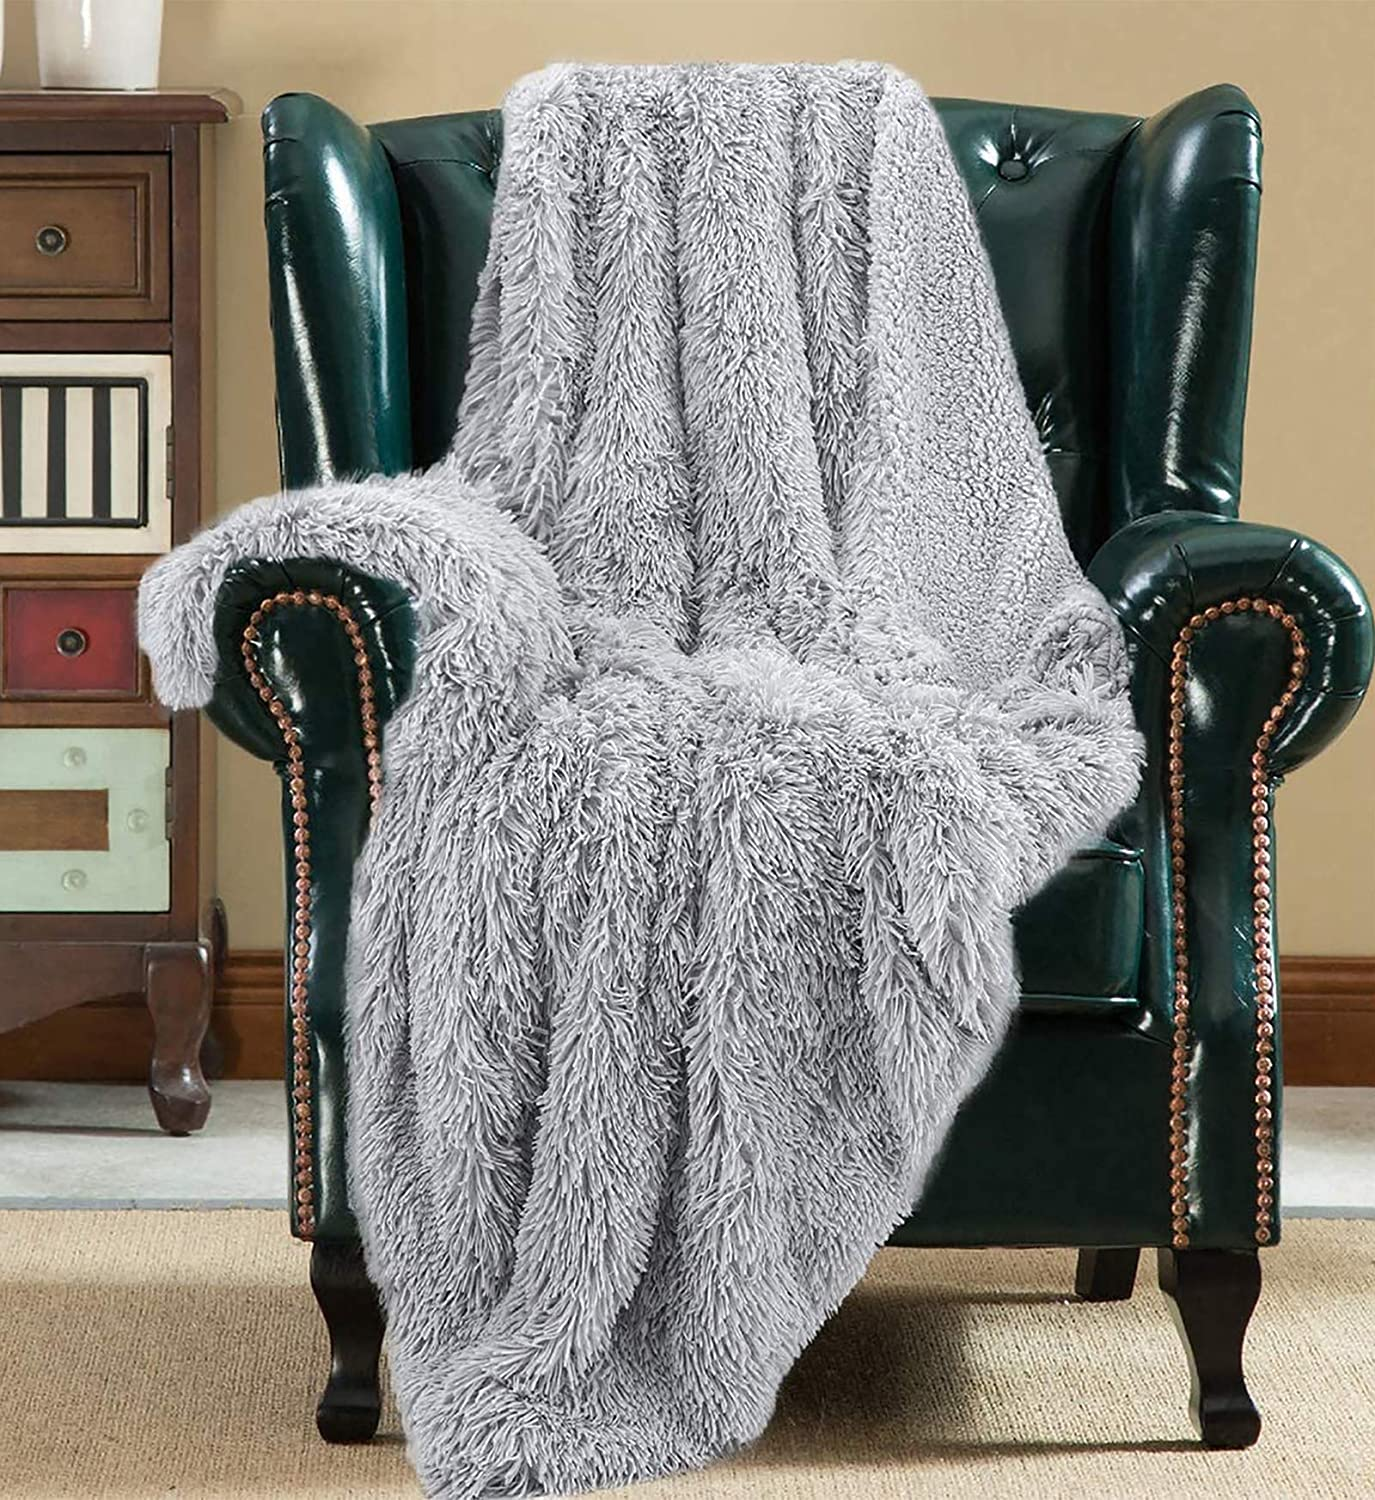 Joyfeel Fuzzy Throw Blankets For Couch Bed 50 X 60 Warm Sherpa And Soft Faux Long Fur Reversible Fleece Blanket Hypoallergenic Machine Washable Silver Grey Kitchen Dining